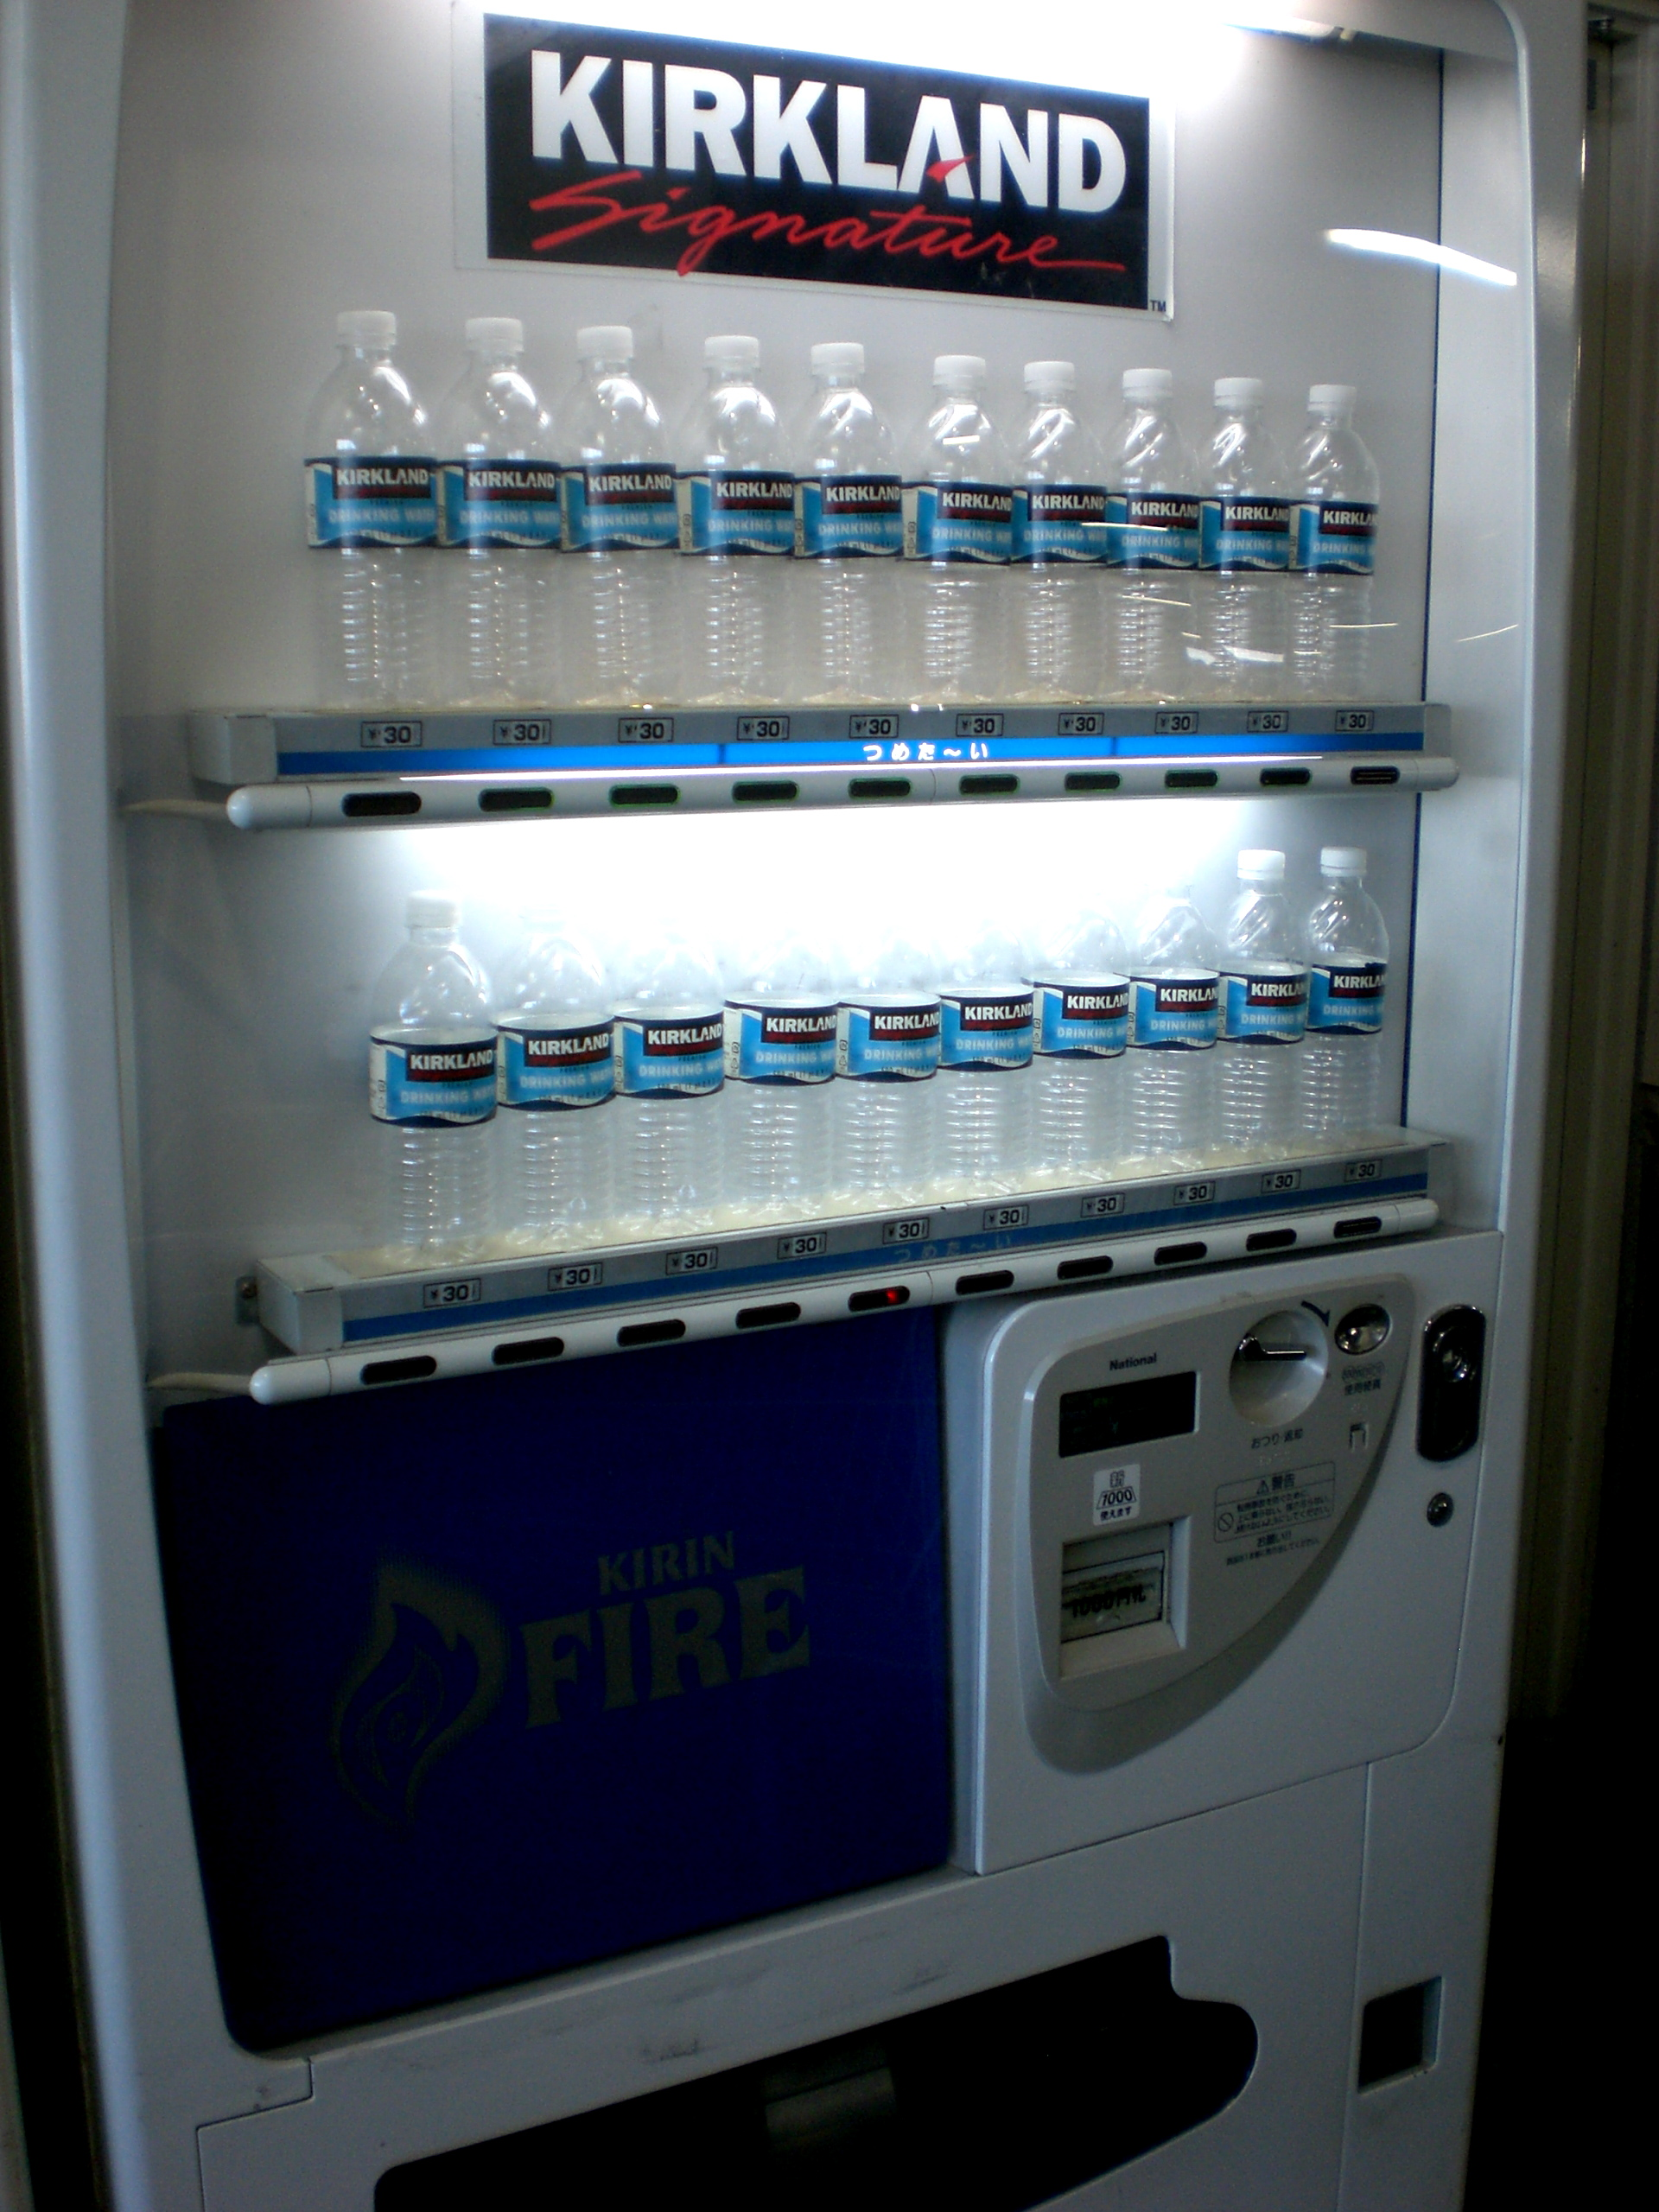 Costco Japan: Kirkland Signature water bottle vending machine.